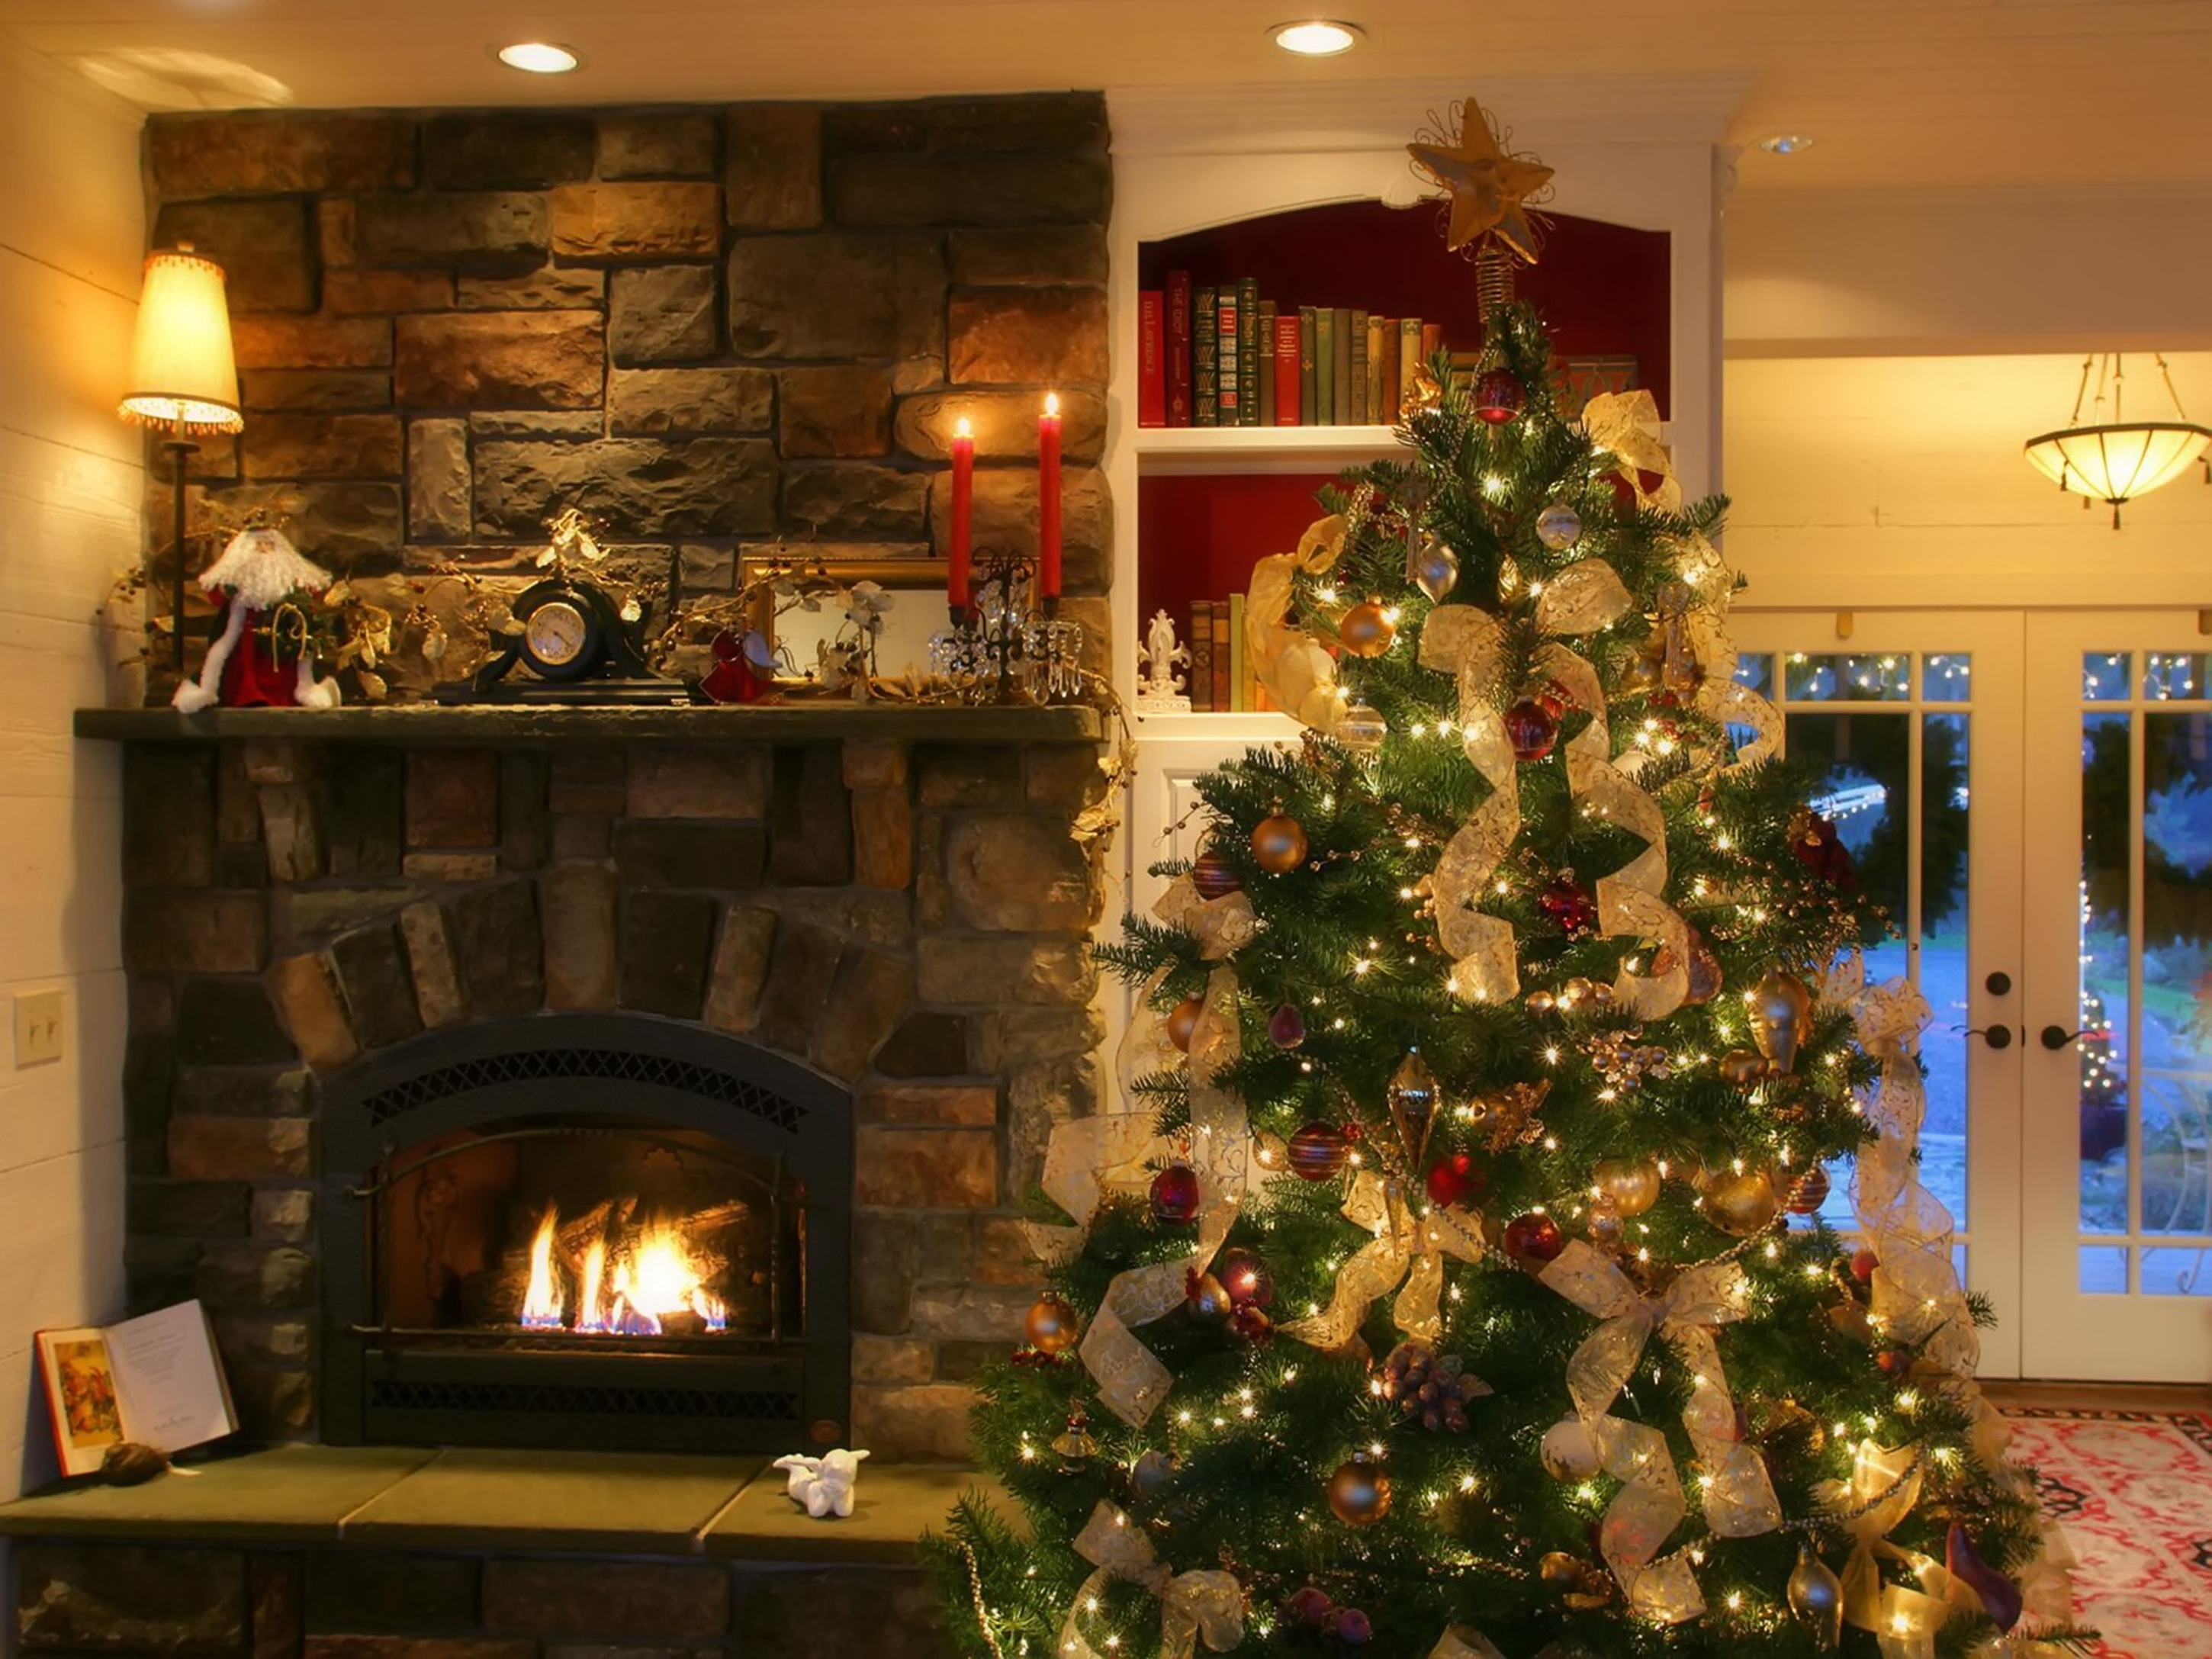 Luxury Modern Fireplace Design Idea In Black With Brown Stone Wall Brown Mantel With Red Candles And Green Christmas Tree Fashionable Modern Fireplace Design Ideas (Image 100 of 123)